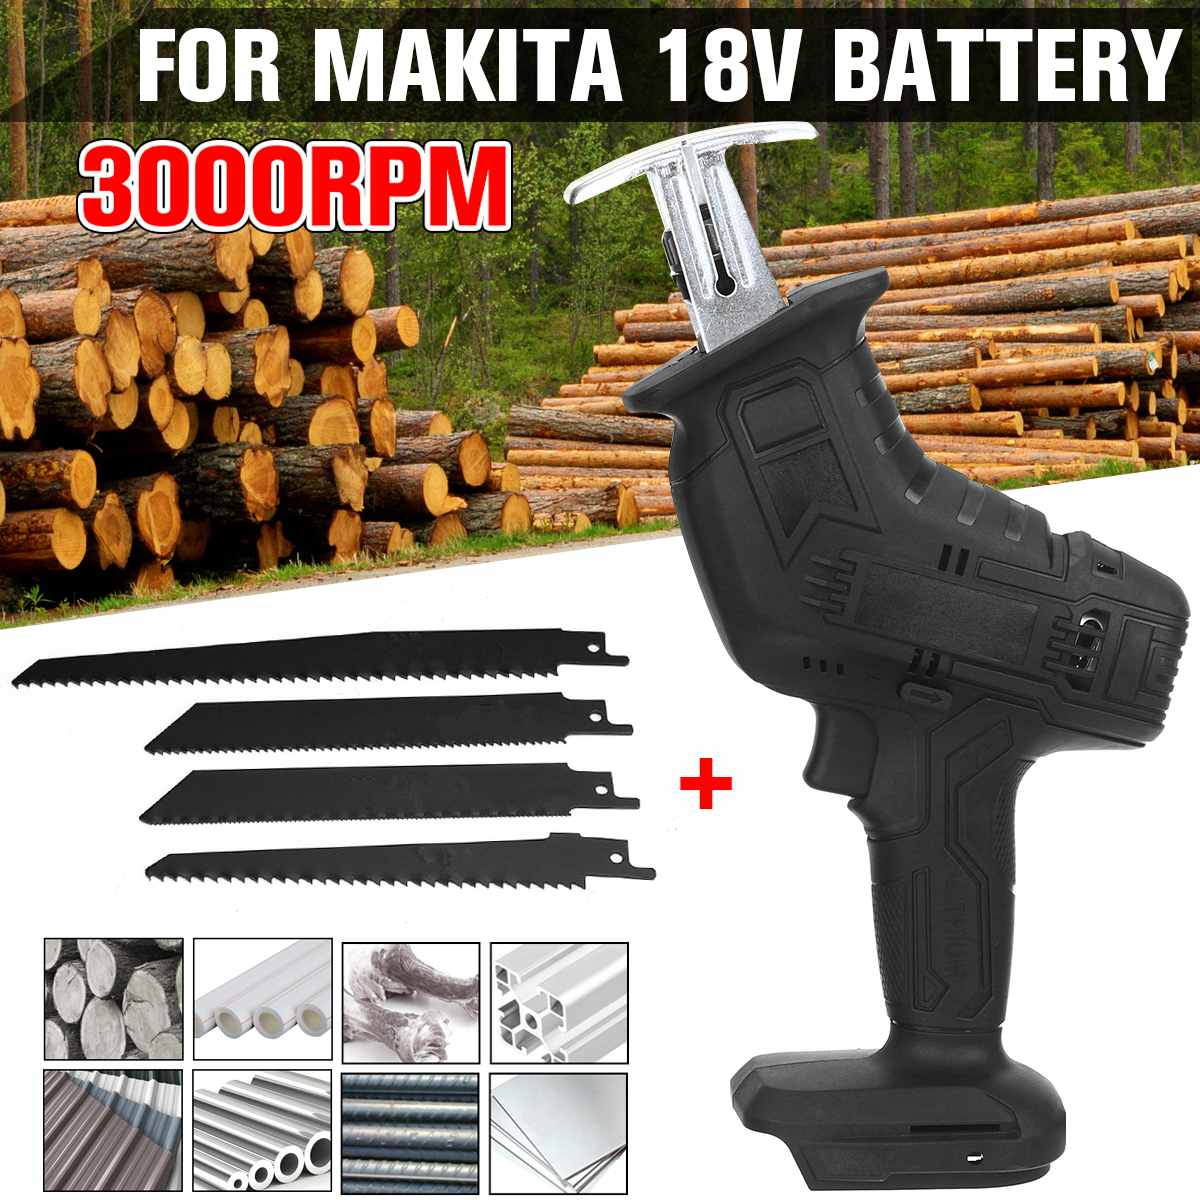 18V 3000rpm Cordless Reciprocating Saw Electric Saw with 4 Blades Kit Portable Metal Wood Cutting Machine for Makita 18V Battery